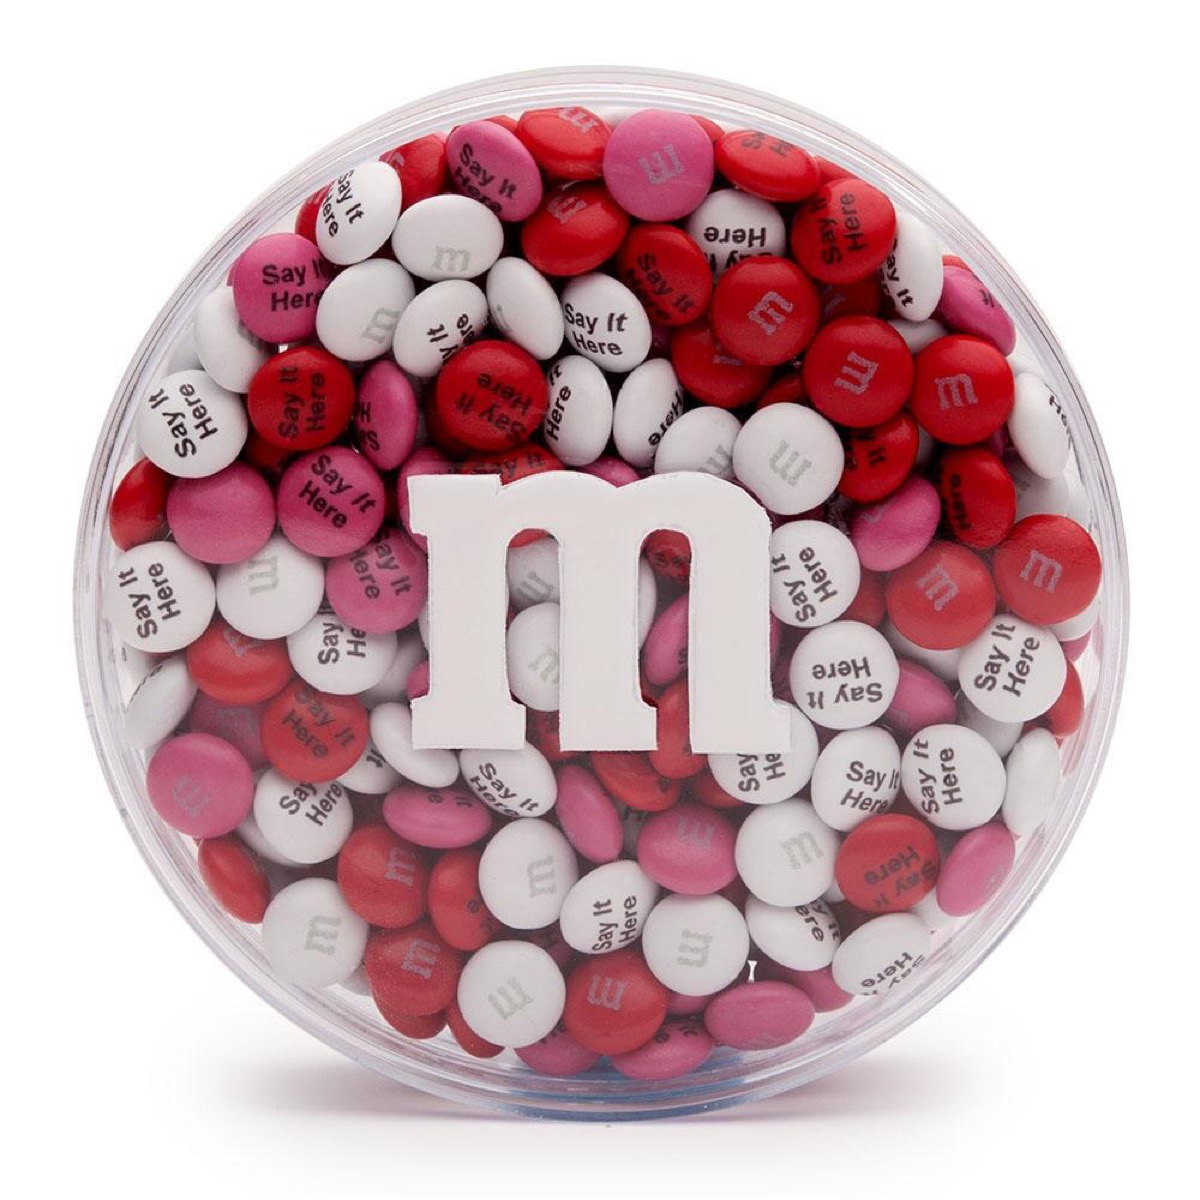 Personalized M&Ms {Christmas Gift Ideas}